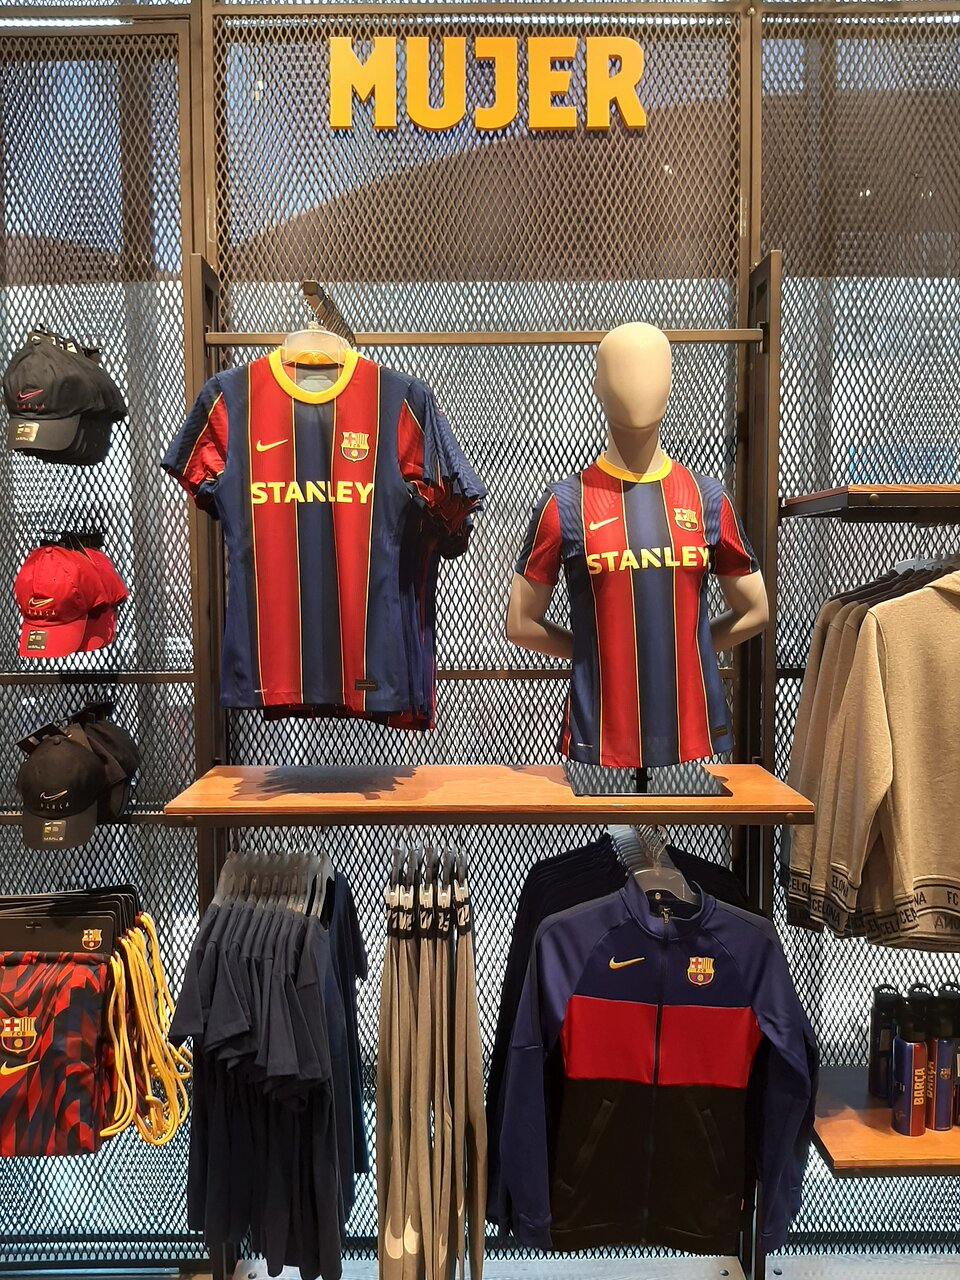 fc barcelona official store camp nou 2020 all you need to know before you go with photos tripadvisor fc barcelona official store camp nou